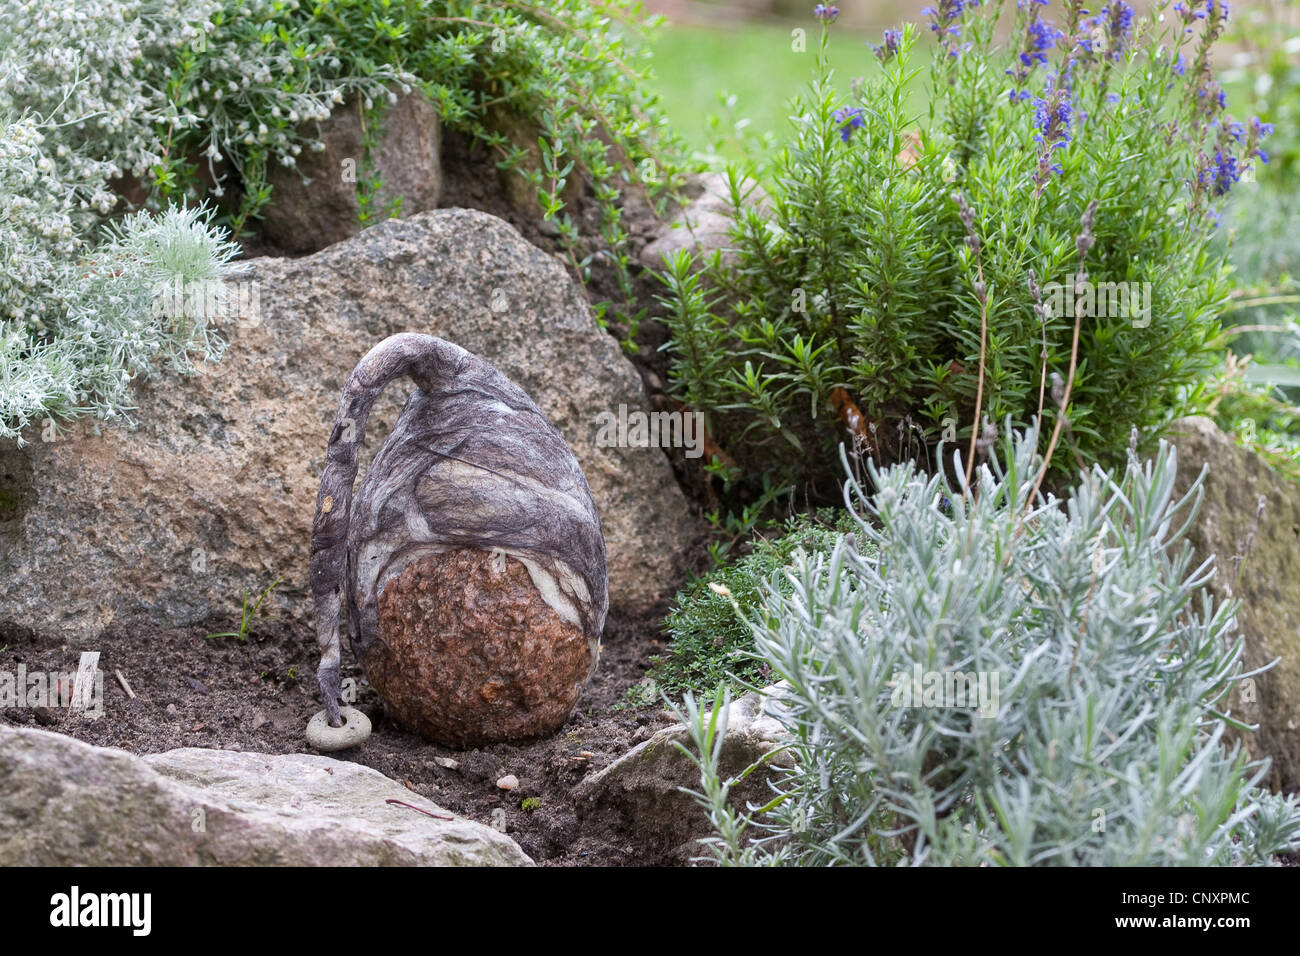 Decorative Stones For Flower Beds Felt Stone Troll Serving As Garden Decoration A Natural Stone